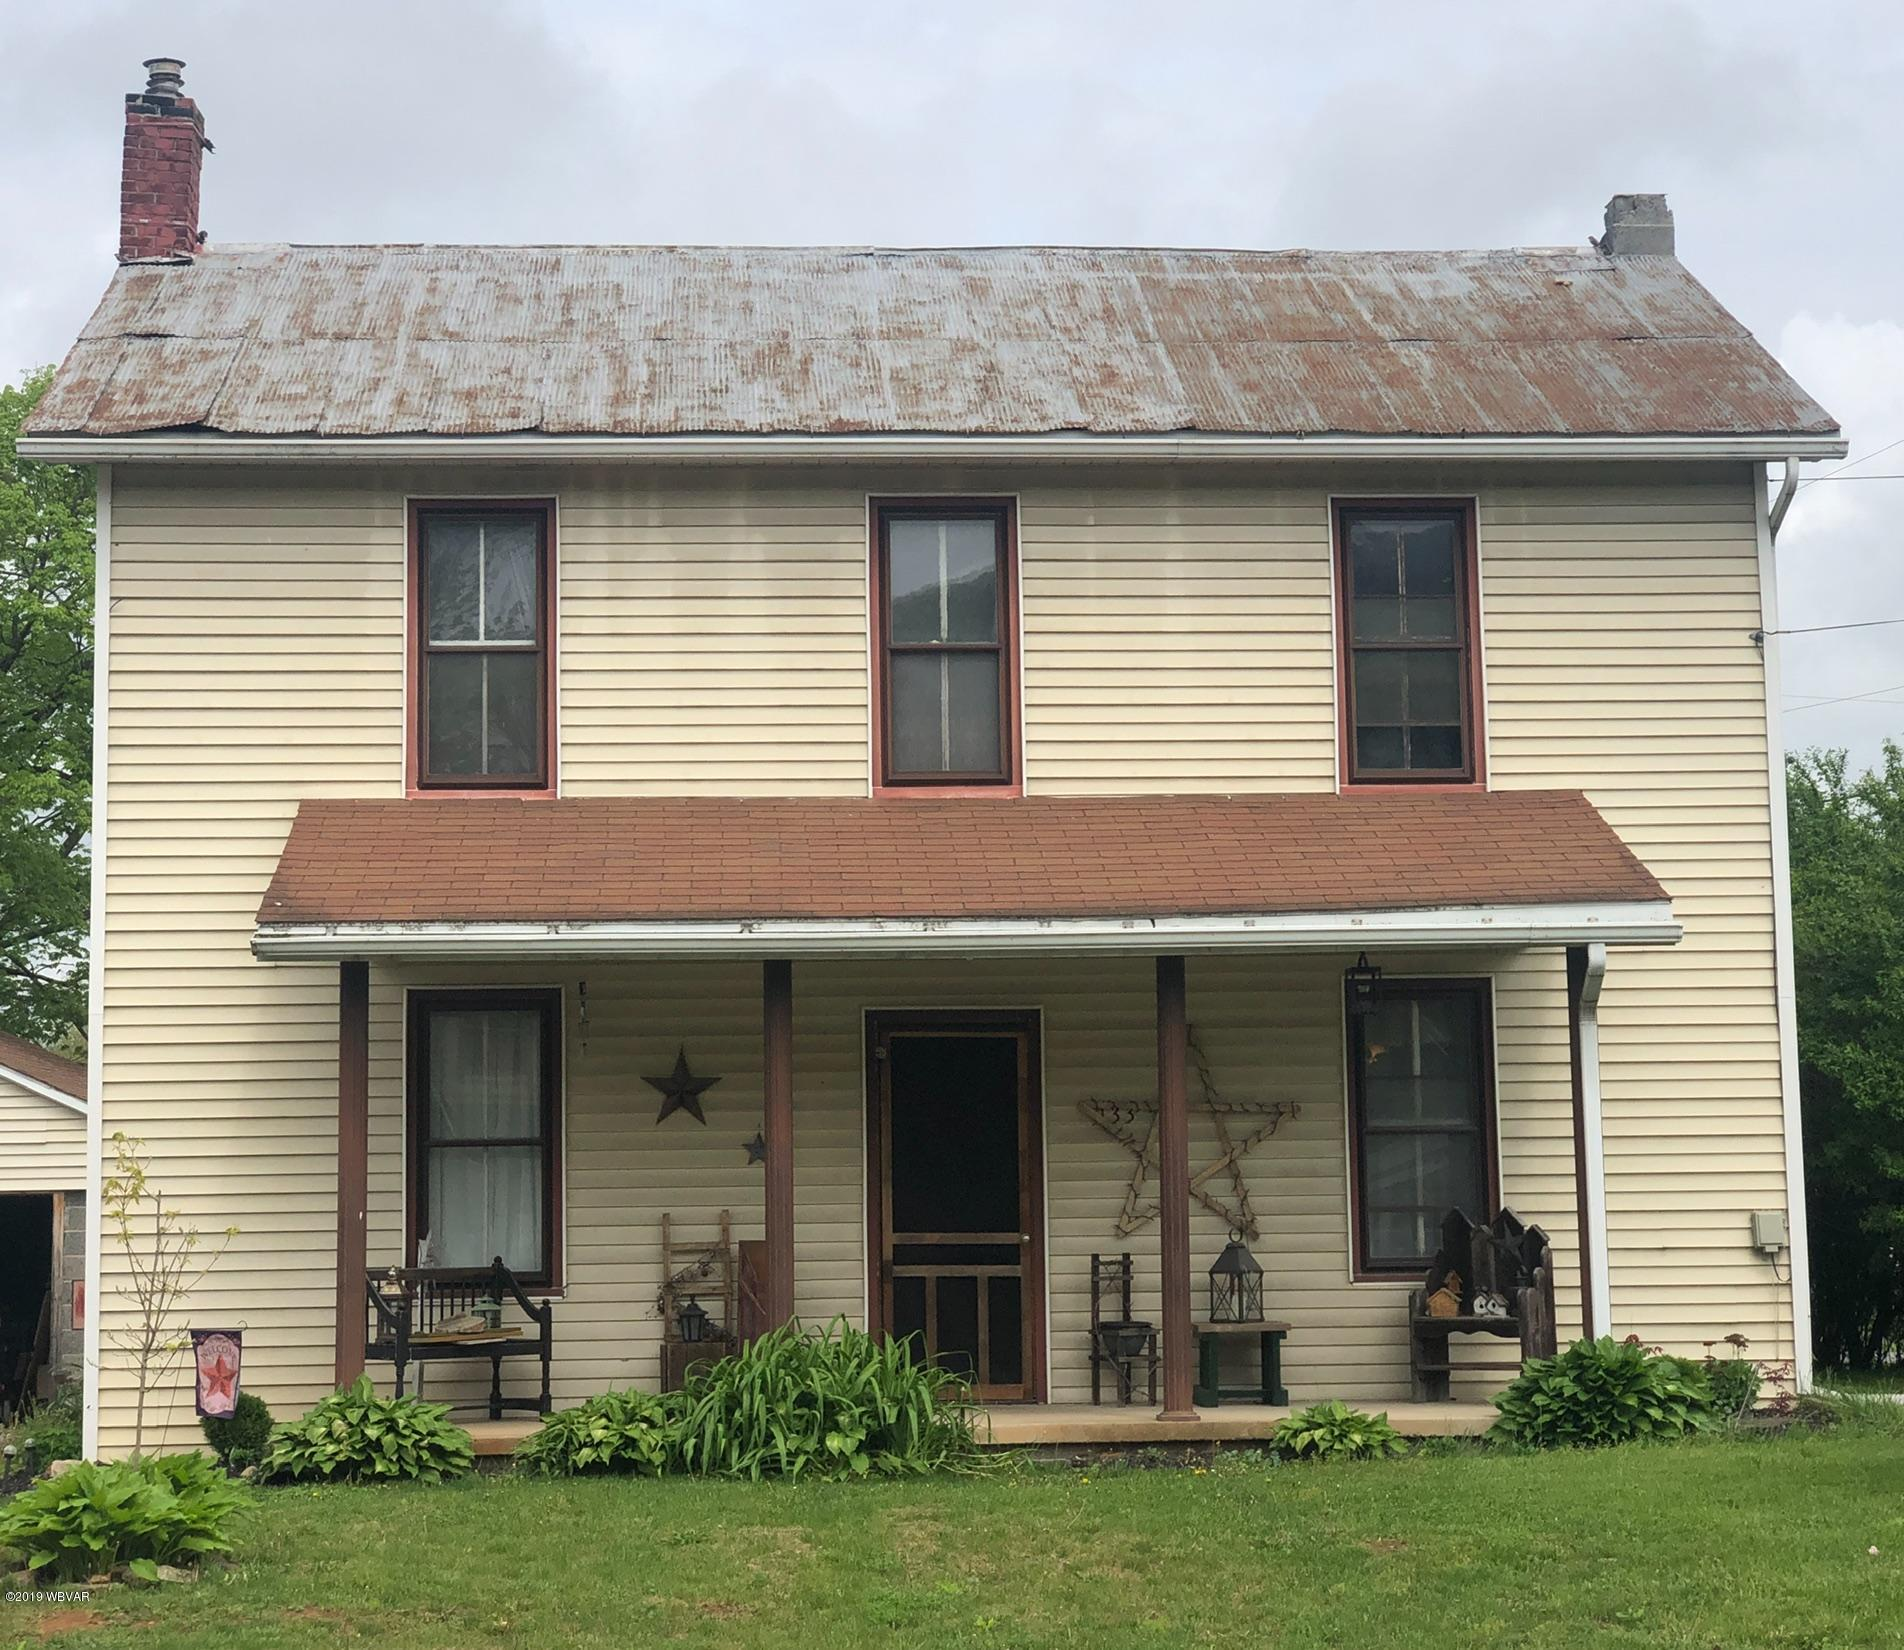 133 FISHING CREEK ROAD,Mill Hall,PA 17751,3 Bedrooms Bedrooms,2 BathroomsBathrooms,Residential,FISHING CREEK,WB-87311